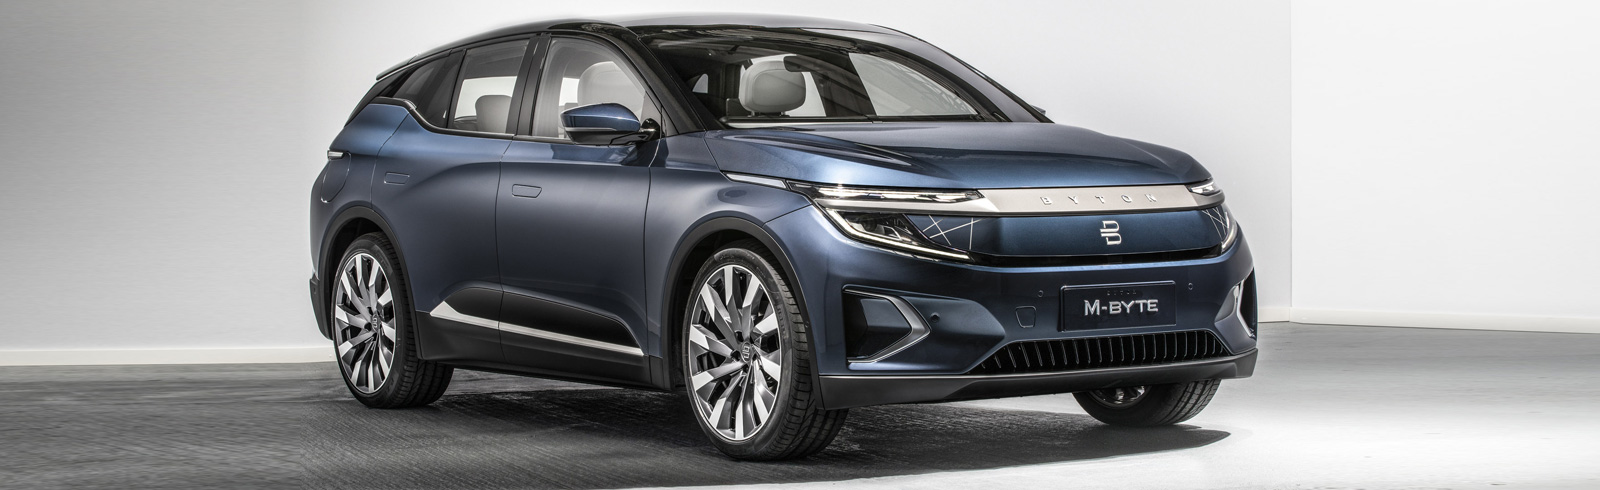 The BYTON M-Byte all-electric SUV goes official with a range of up to 435 km